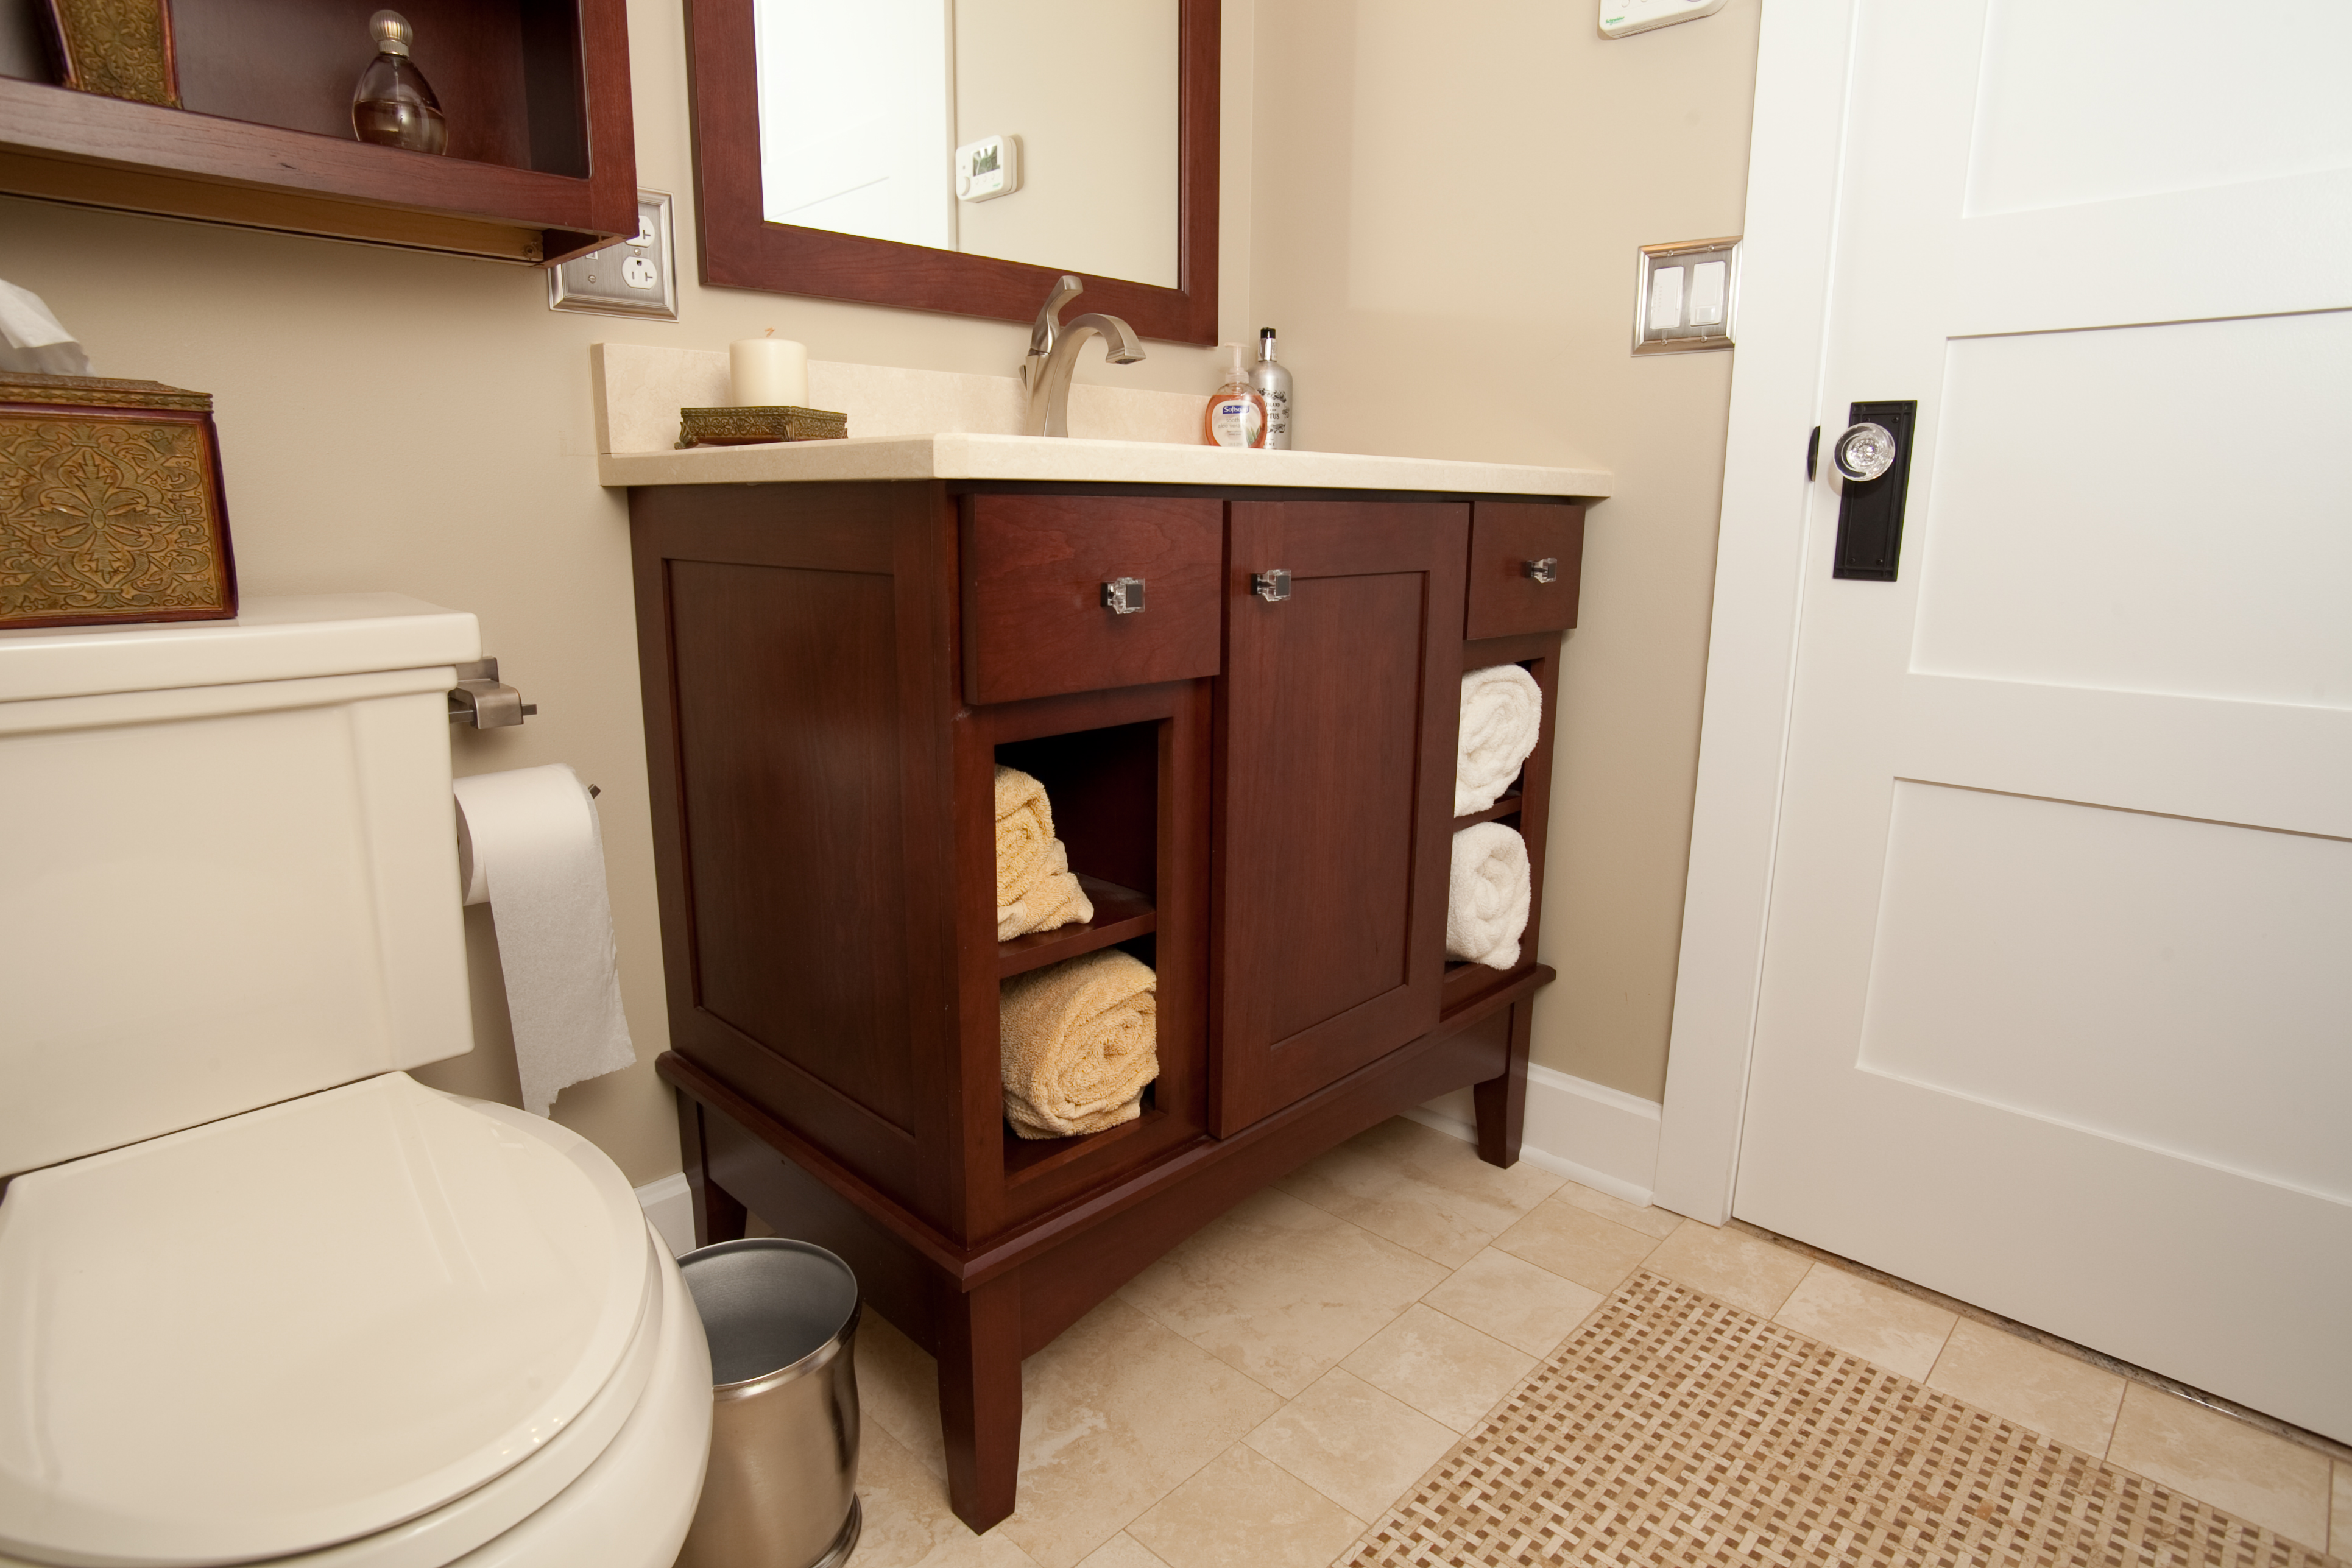 Bathroom remodel in Milford, PA